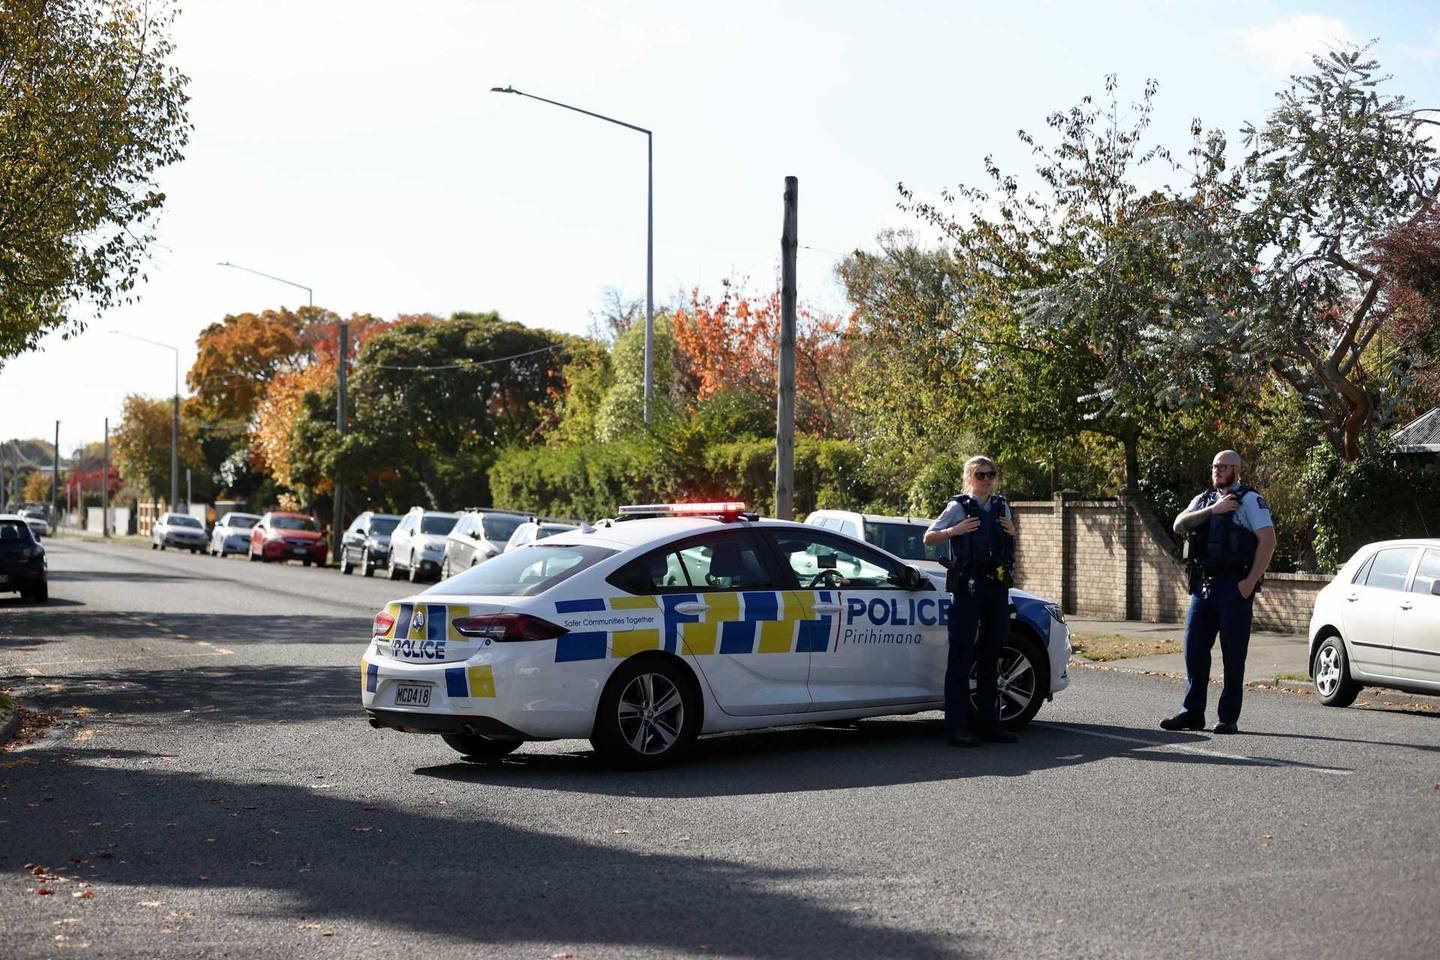 Police at the scene of the incident. Photo: George Heard